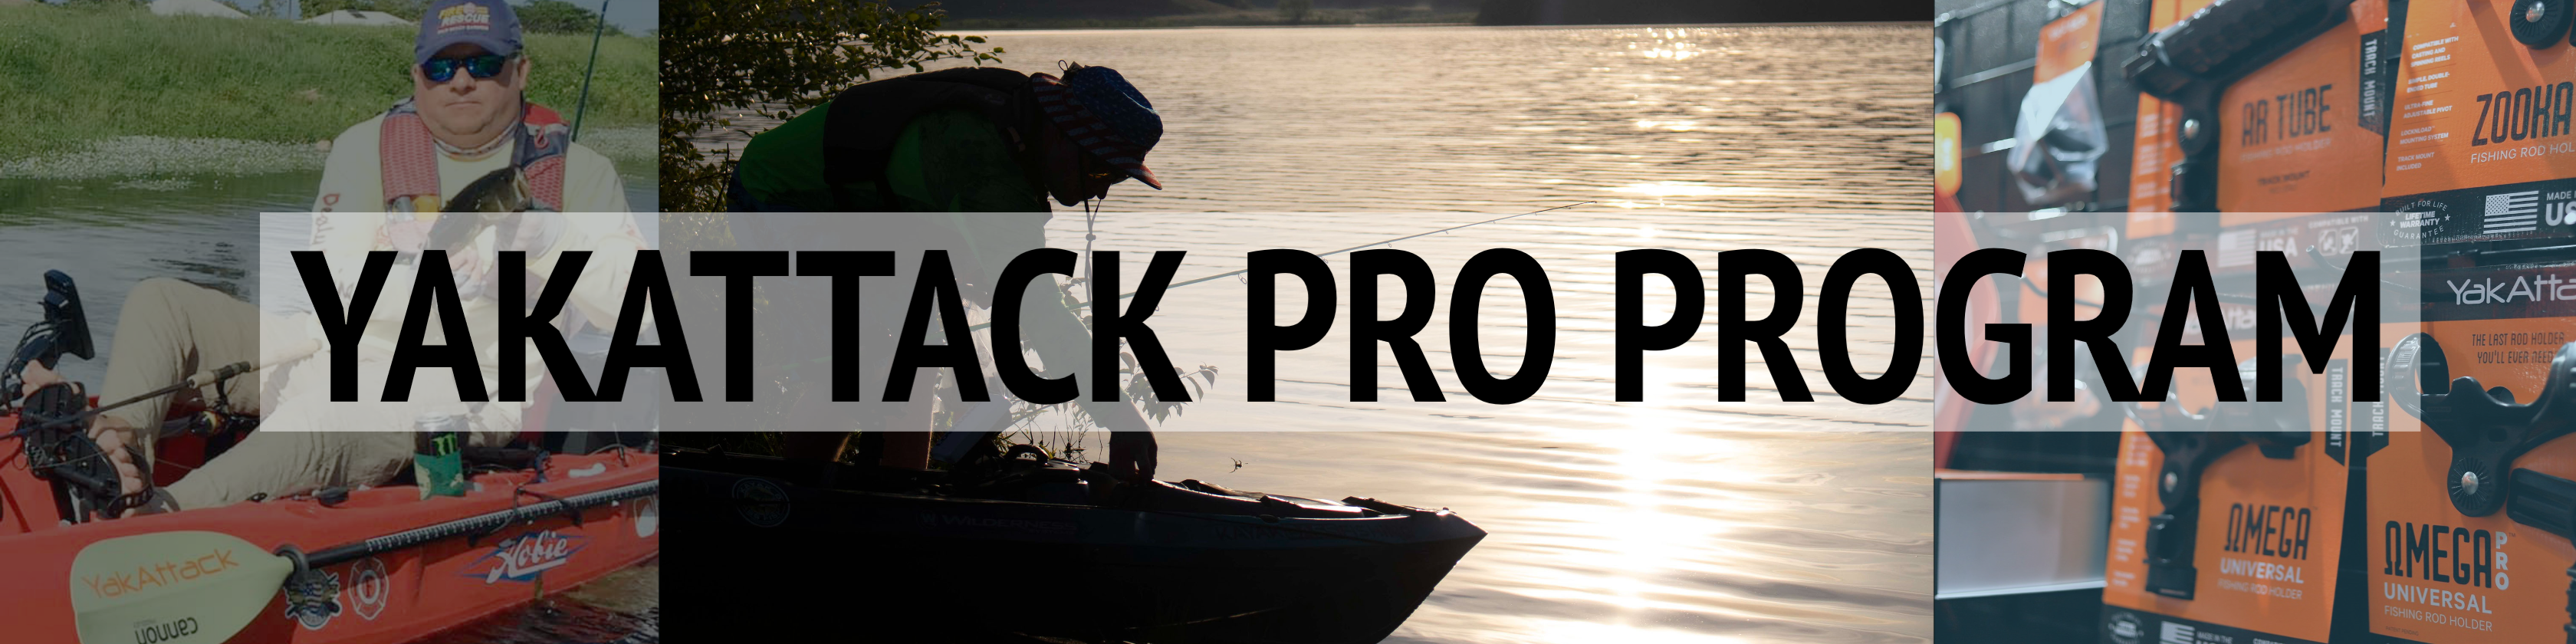 yakattack-pro-form-header.png